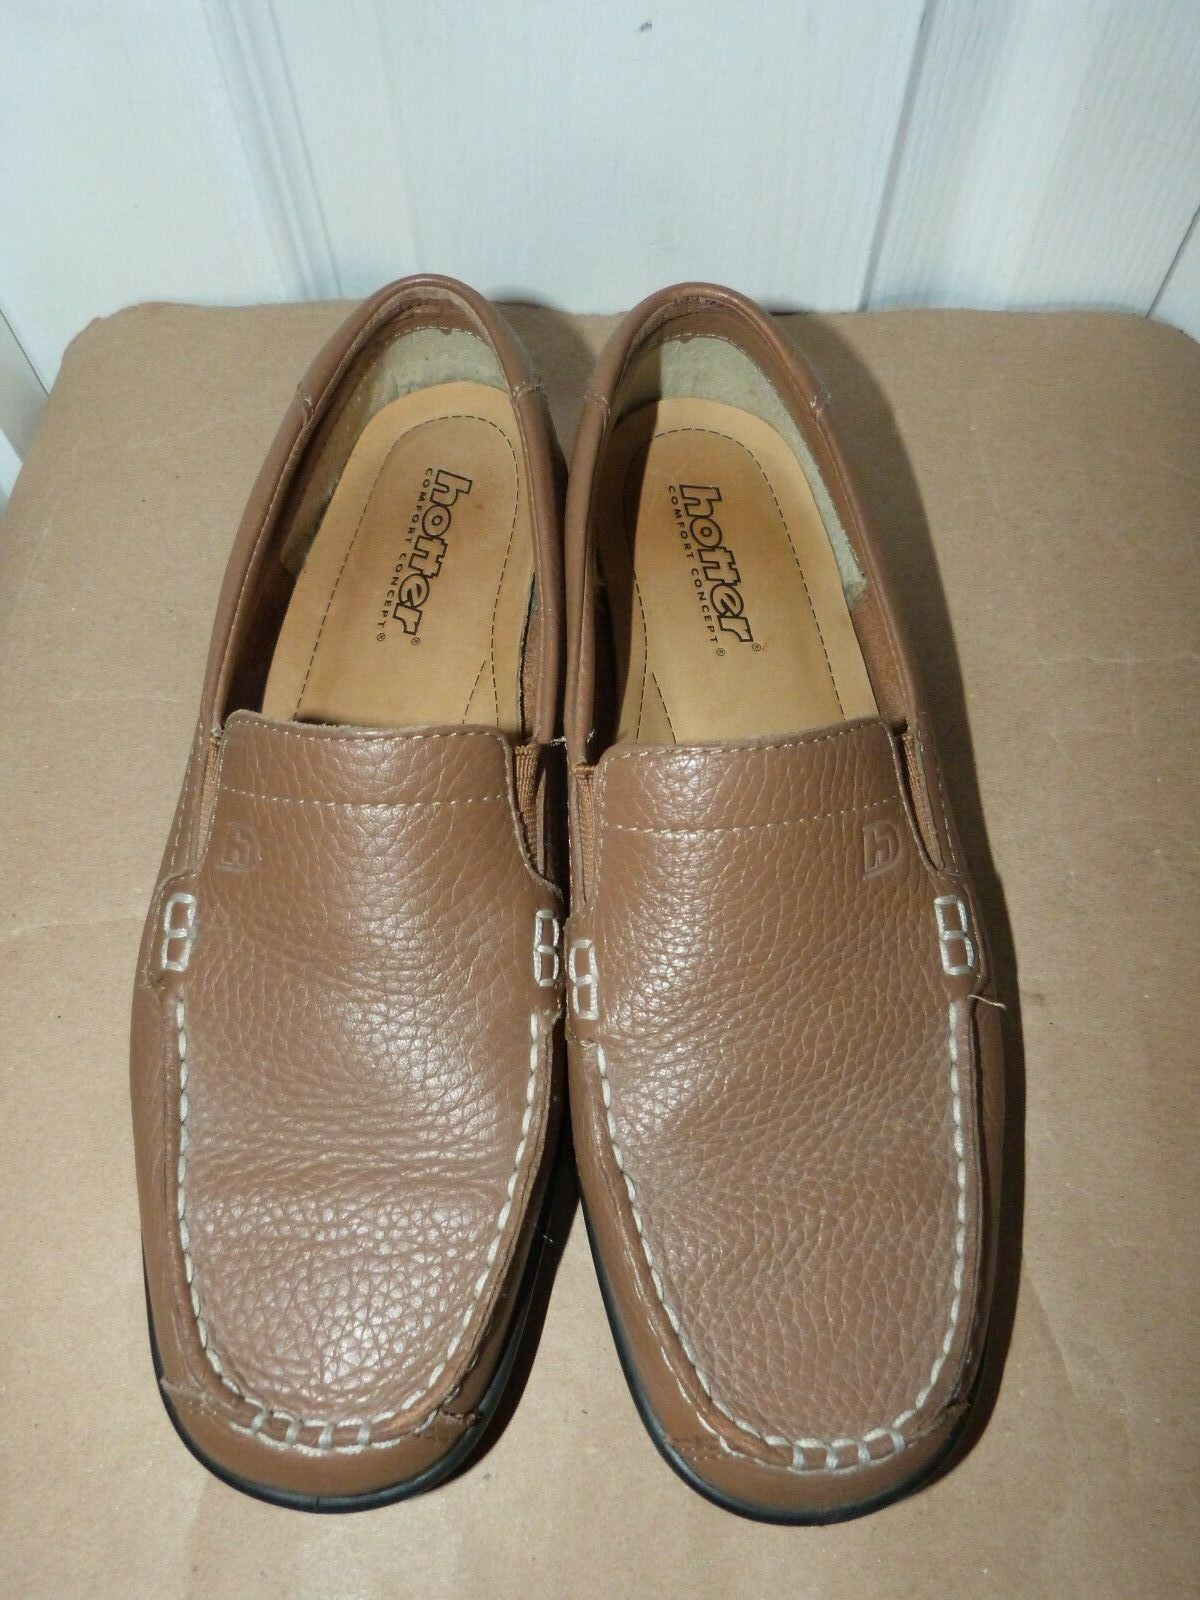 Mesdames Tan caramel Hotter Dash Moccasin Conduite Chaussure Taille 6 (39)